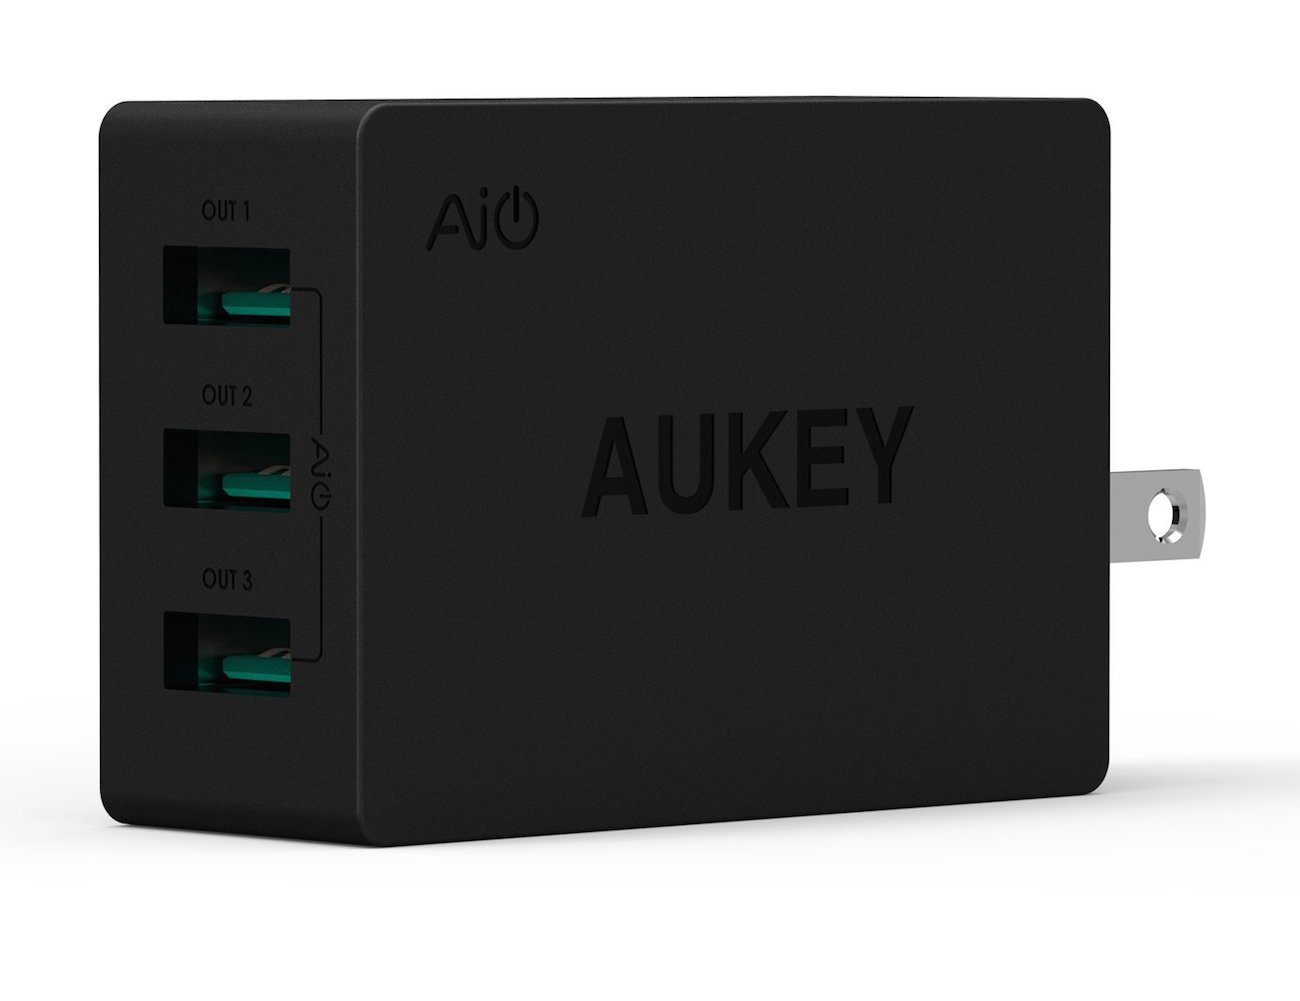 usb-travel-wall-charger-adapter-by-aukey-03